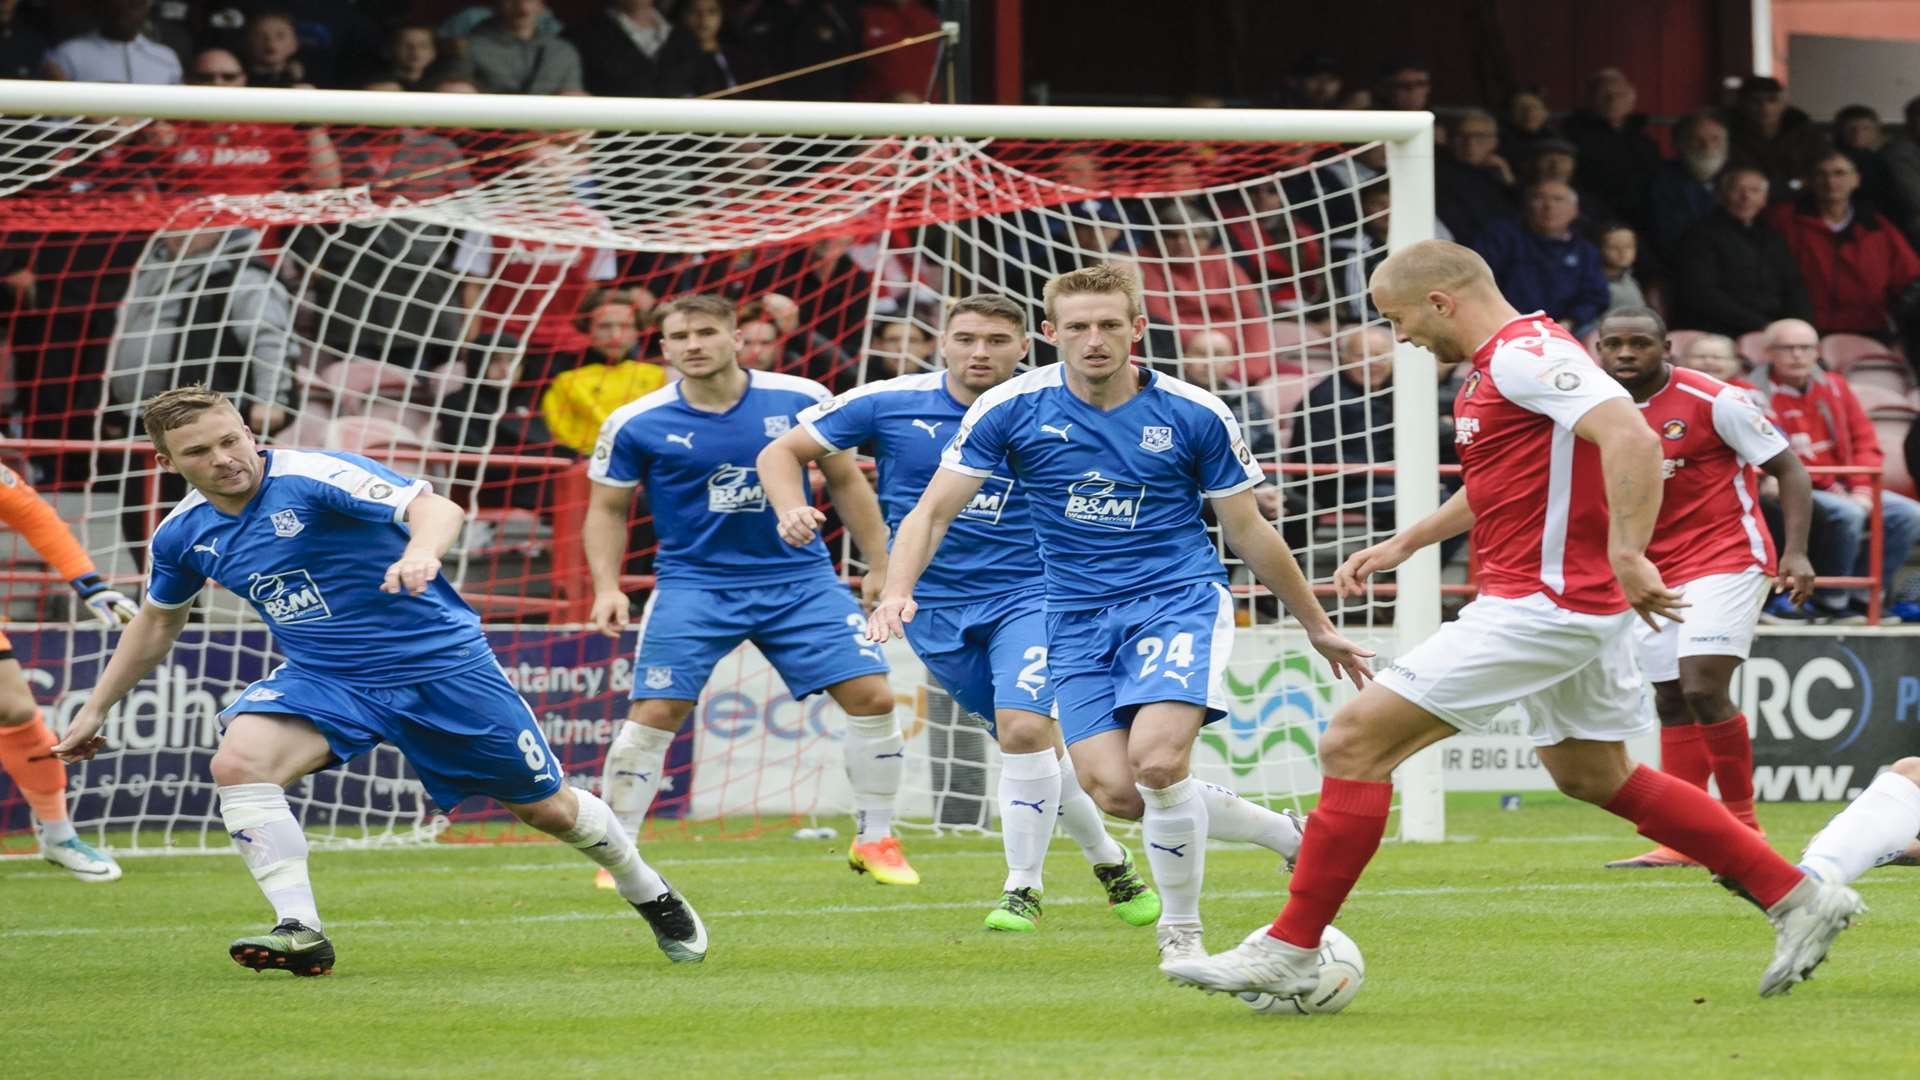 Ebbsfleet are now competing with the likes of Tranmere Picture: Andy Payton